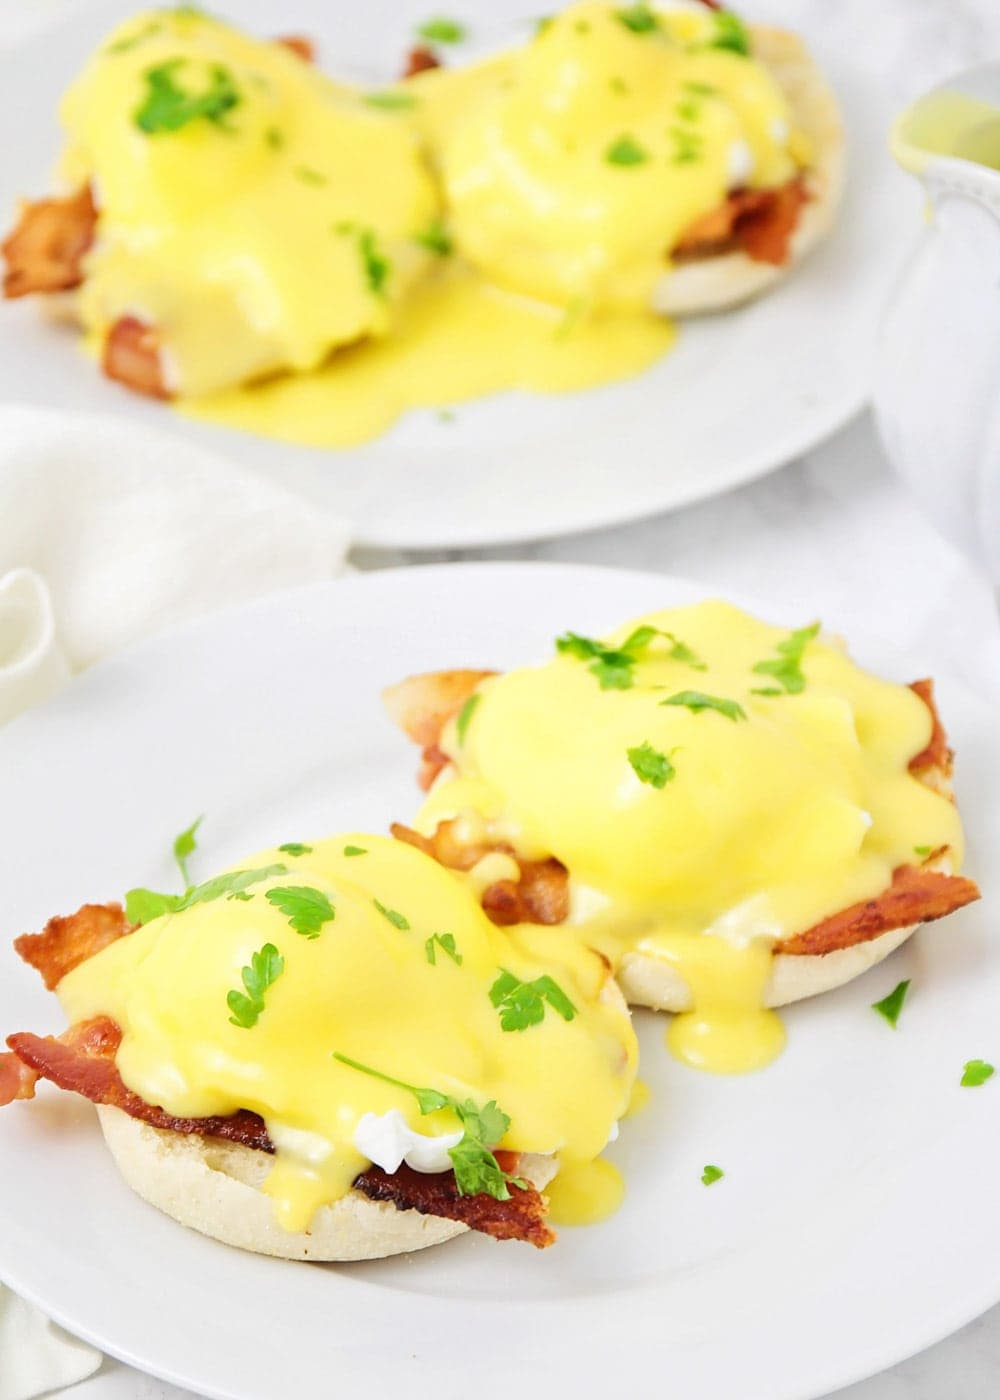 Close up of eggs Benedict smothered in homemade hollandaise sauce